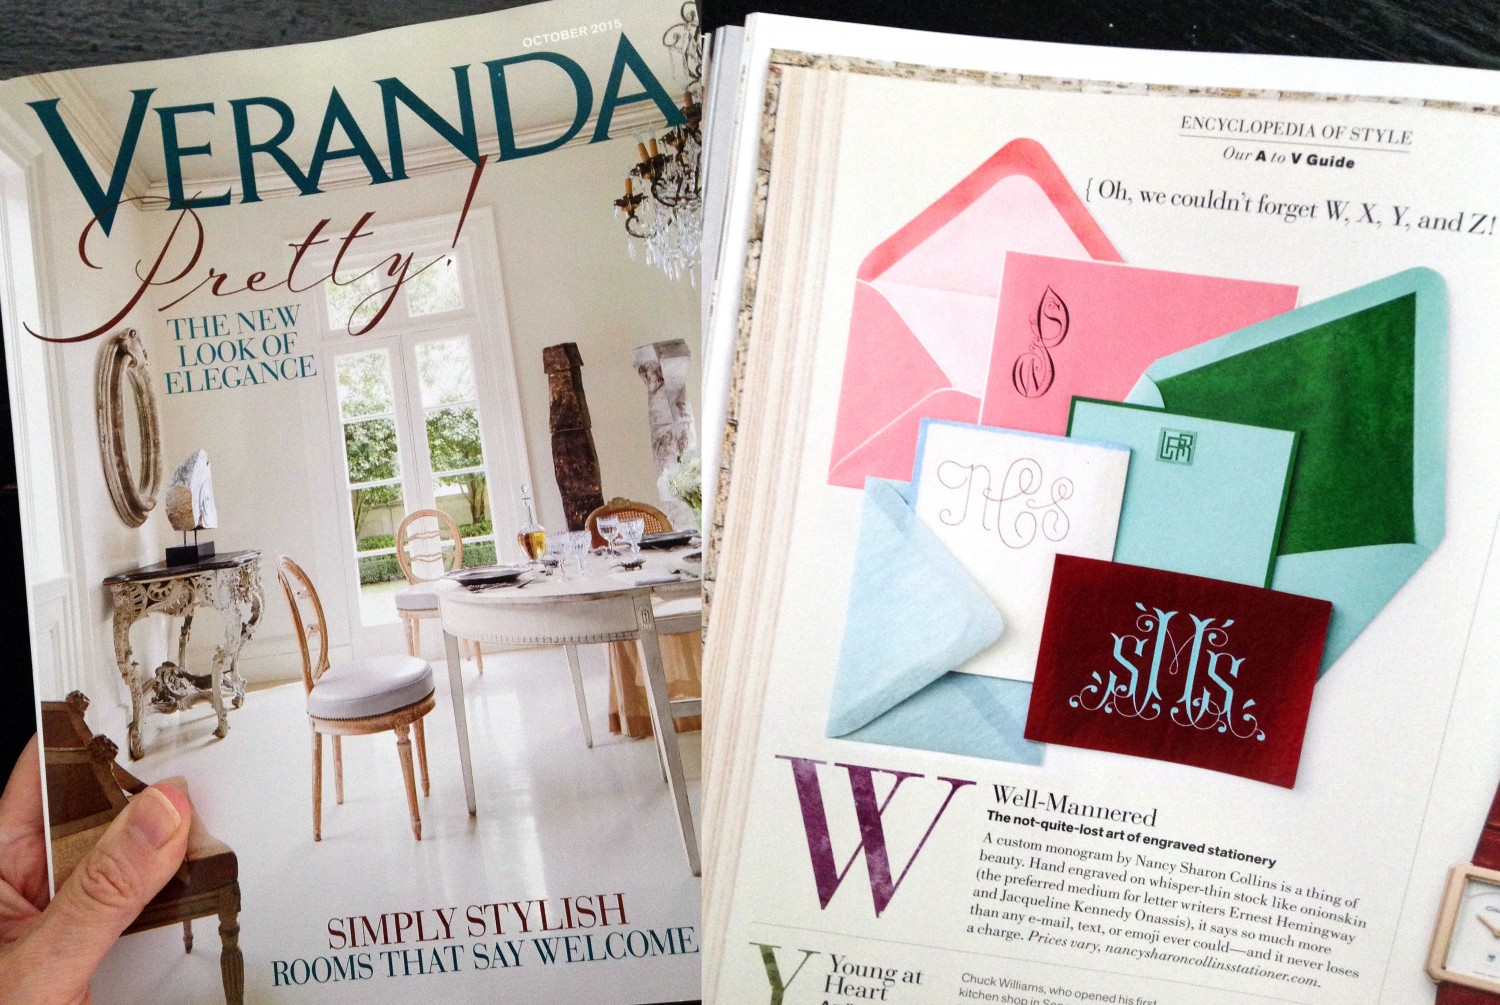 See page 76 of Veranda magazine: Hand engraved stationery by Nancy Sharon Collins.